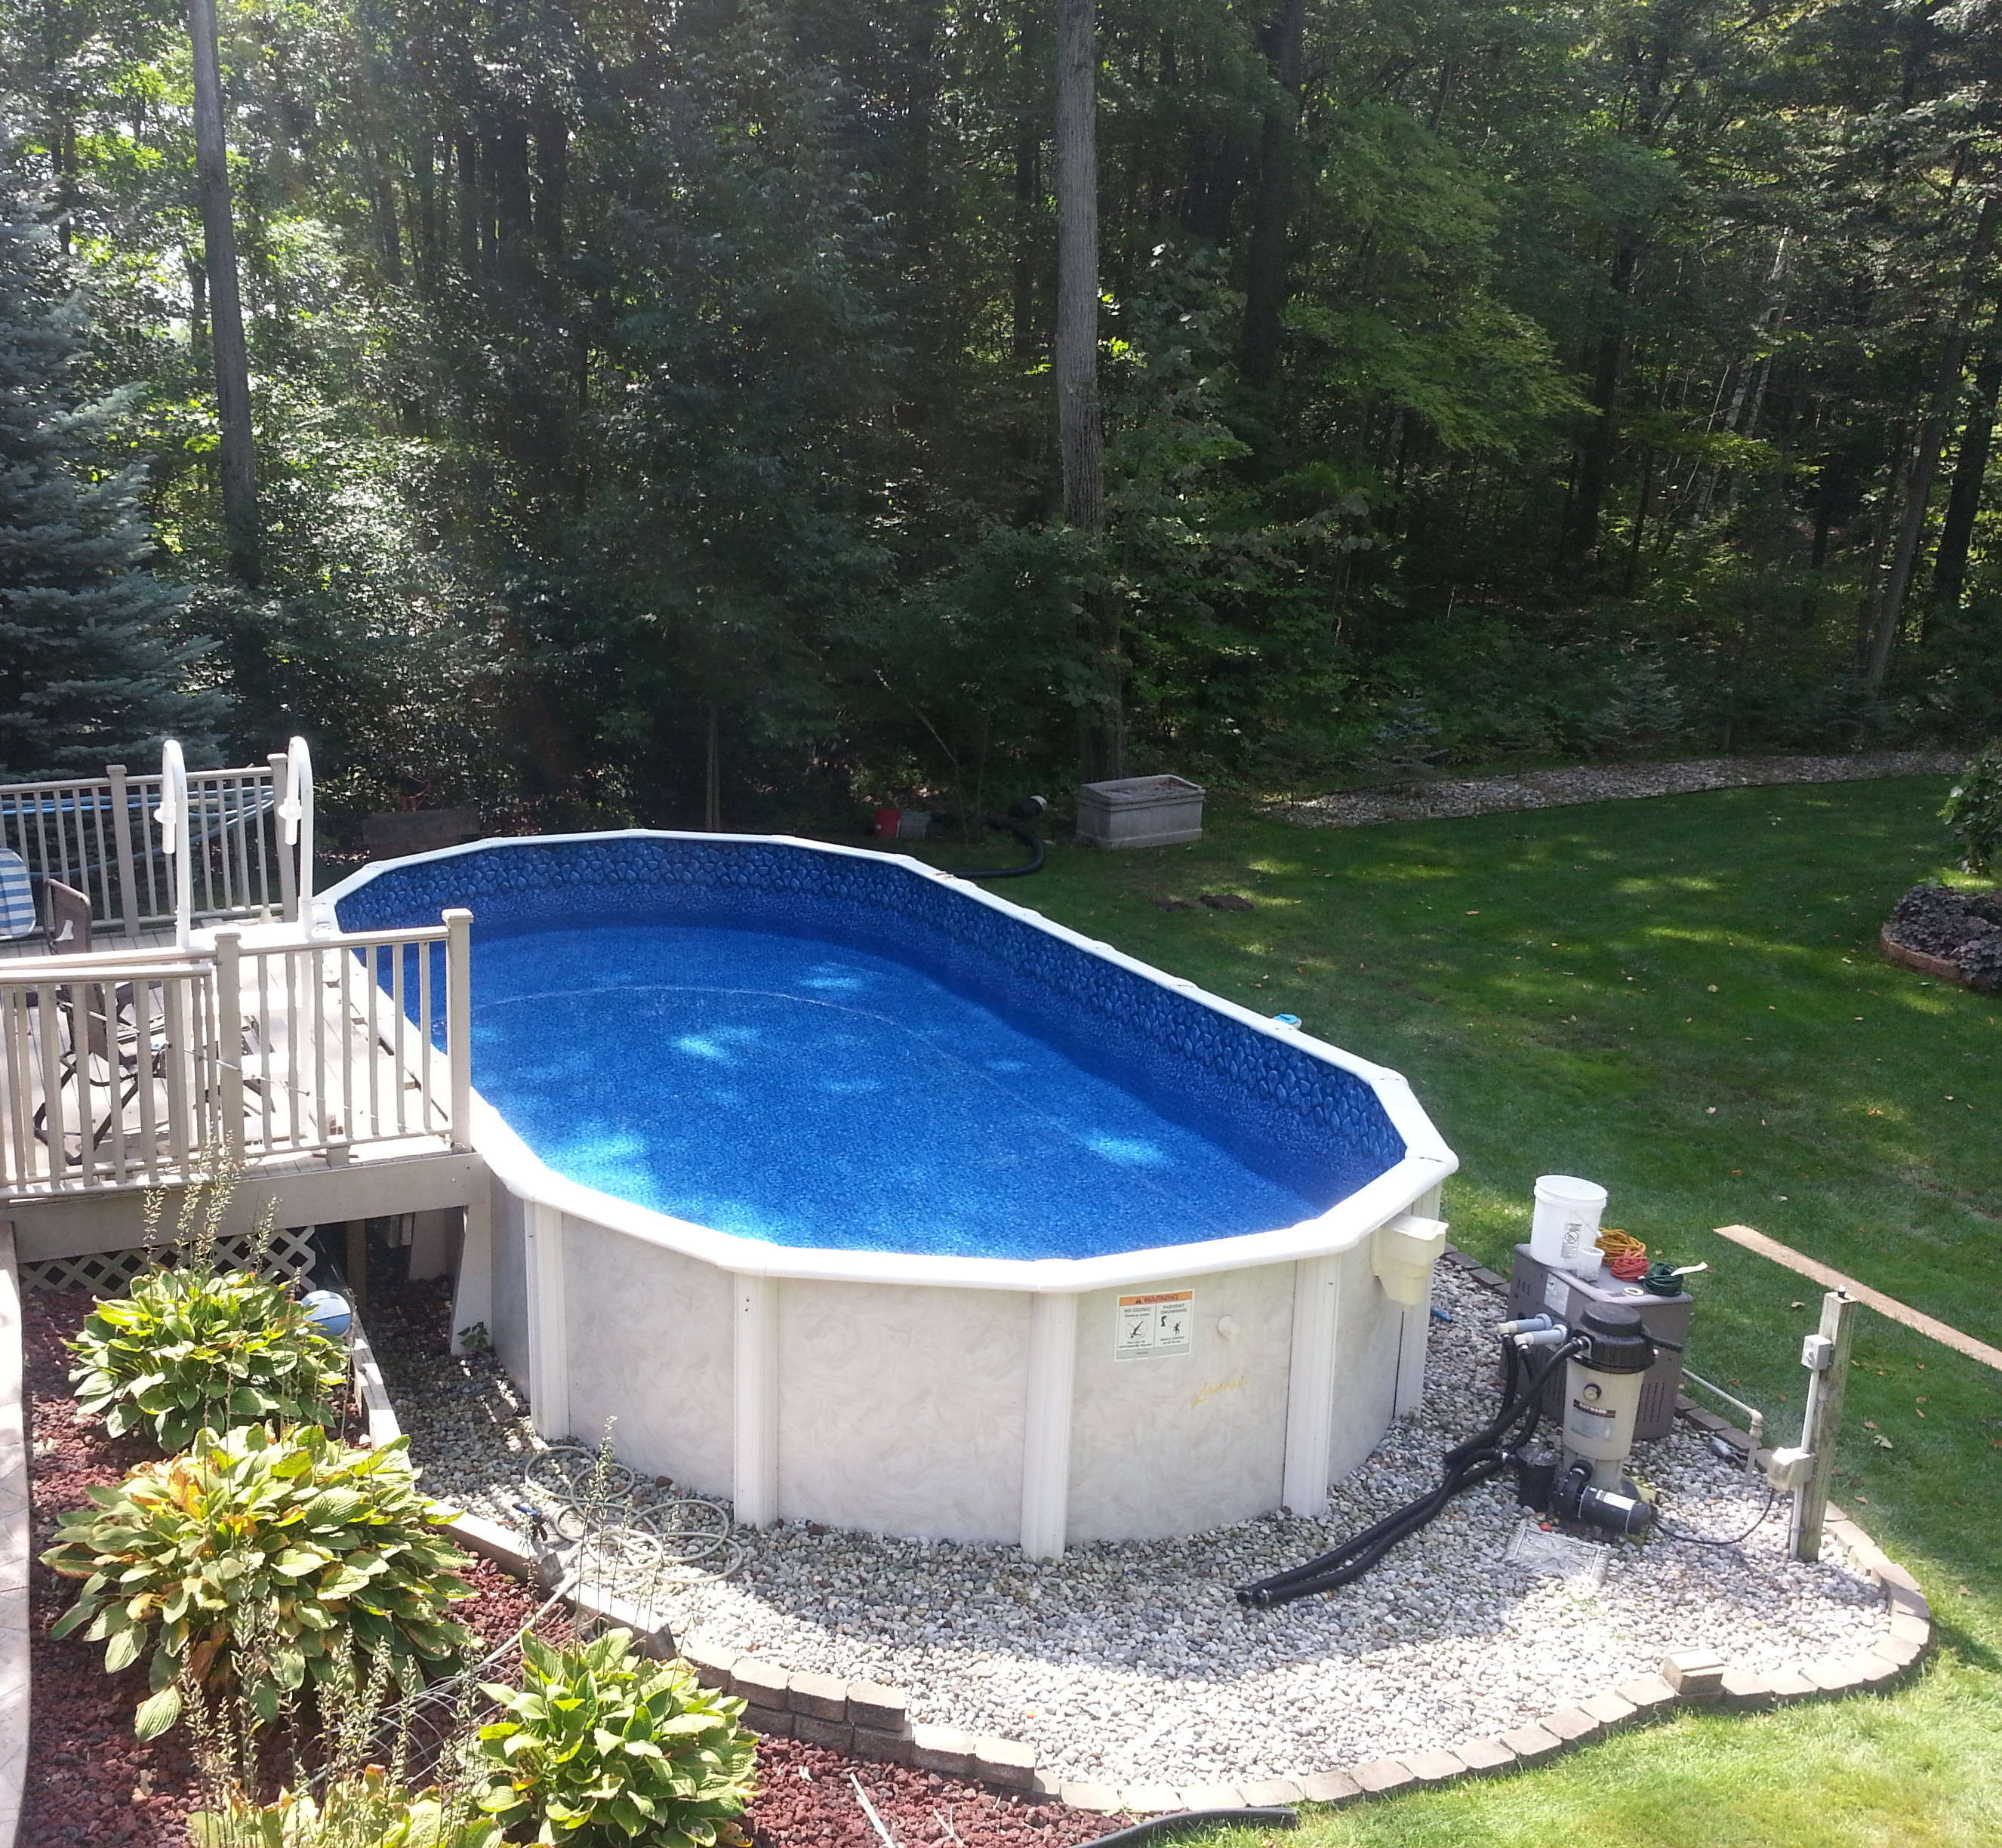 Pool installation crystal clear pools mi for Installing pool liner in cold weather